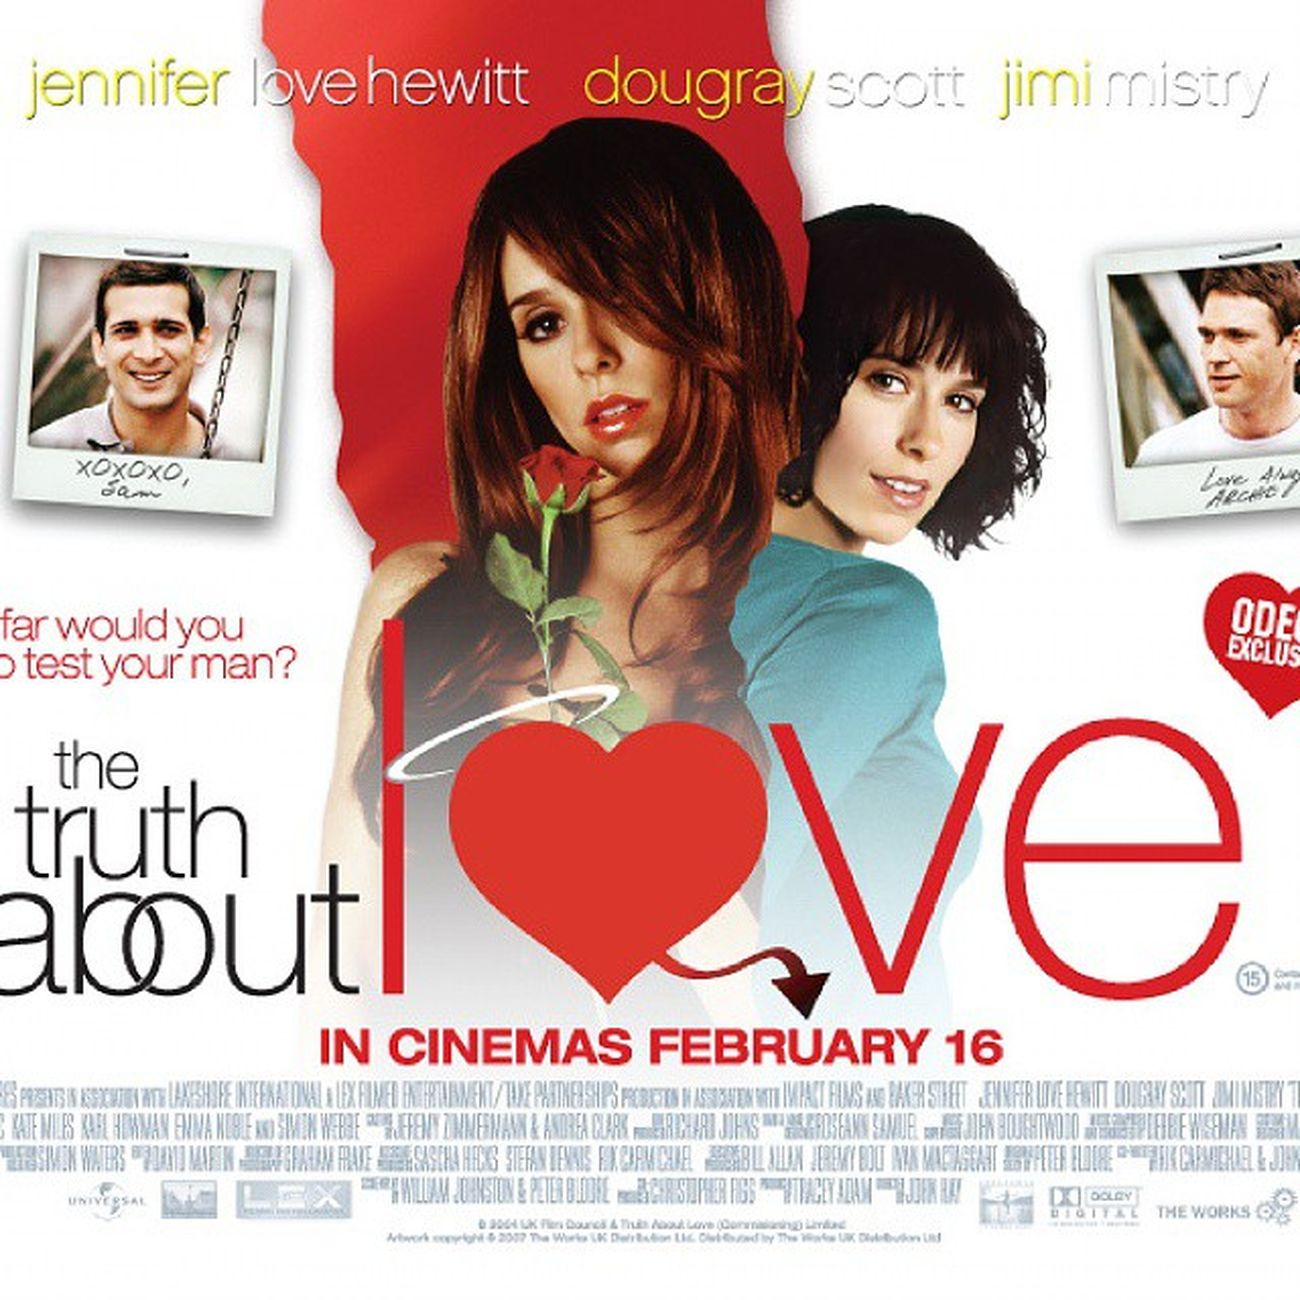 My Top 15 Happy-Ending Romantic Movie TheTruthAboutLove Jenniferlovehewitt DougrayScott British Cheating Husband Mistress Disguise Bestfriend Cute Sweet Letter Card Valentines Romantic ChickFlick Moviee